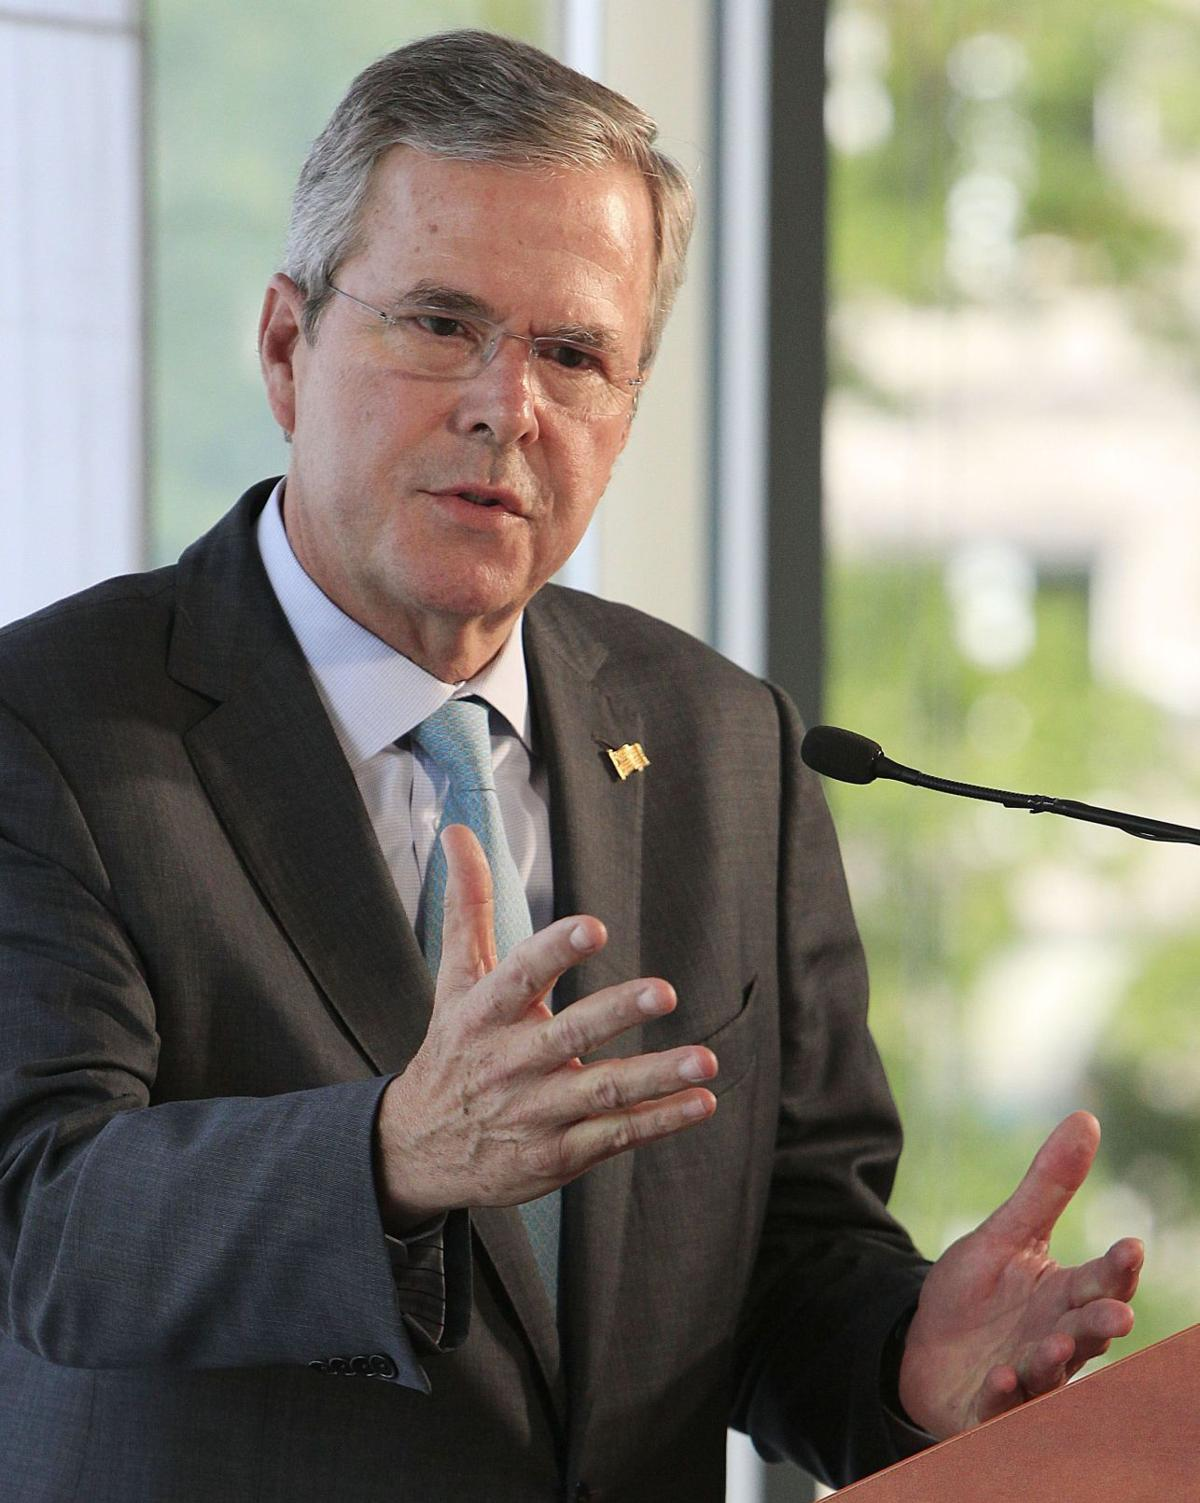 Bush says he's 'evolved' on unwed motherhood